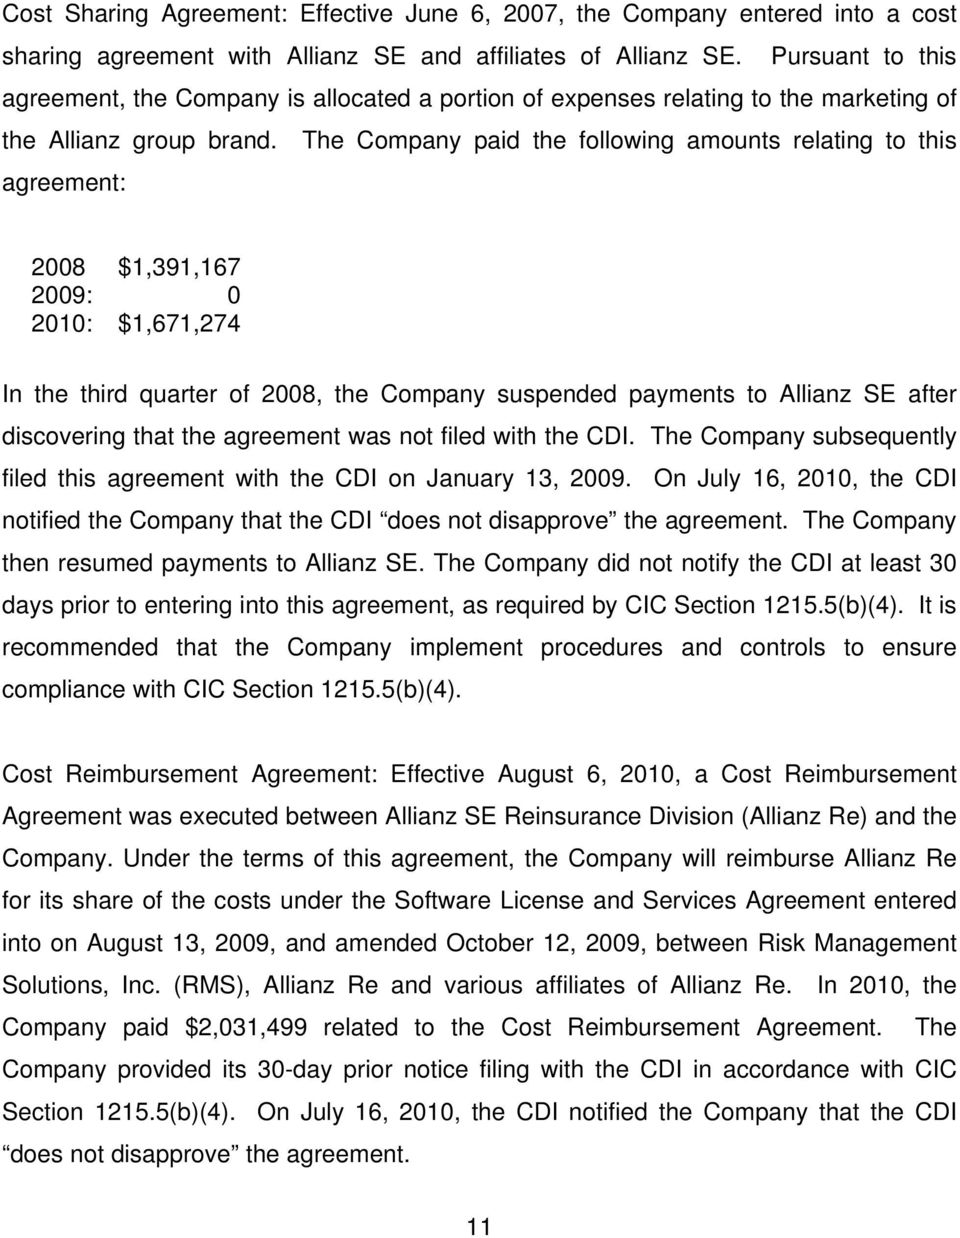 The Company paid the following amounts relating to this agreement: 2008 $1,391,167 2009: 0 2010: $1,671,274 In the third quarter of 2008, the Company suspended payments to Allianz SE after